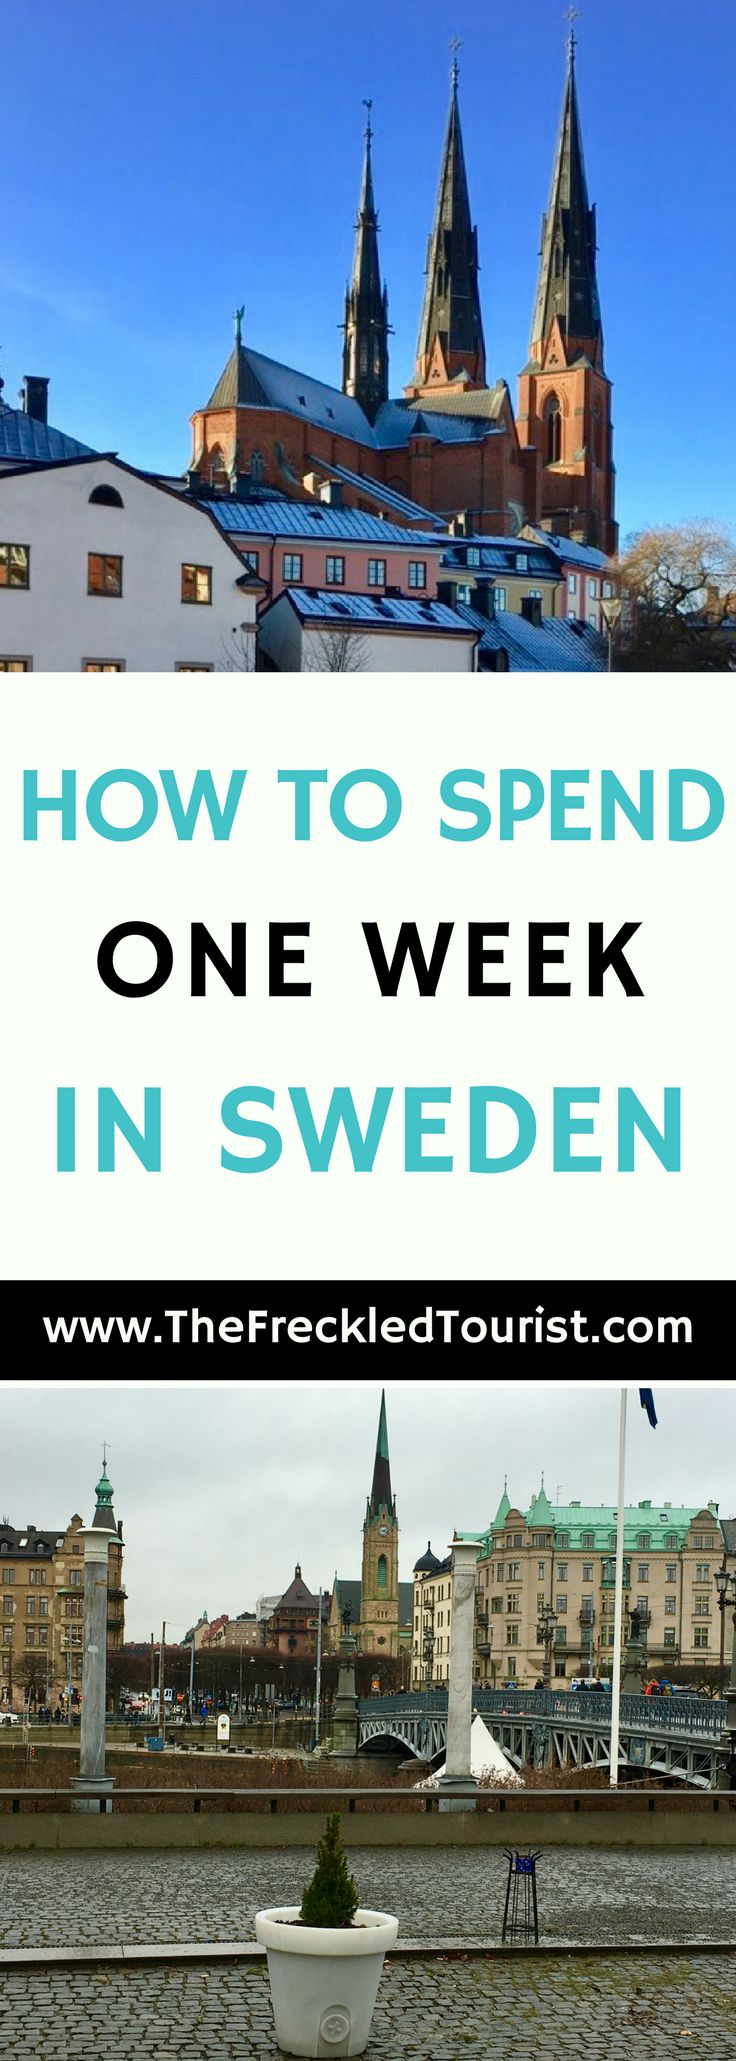 Complete guide and itinerary for a trip to Sweden